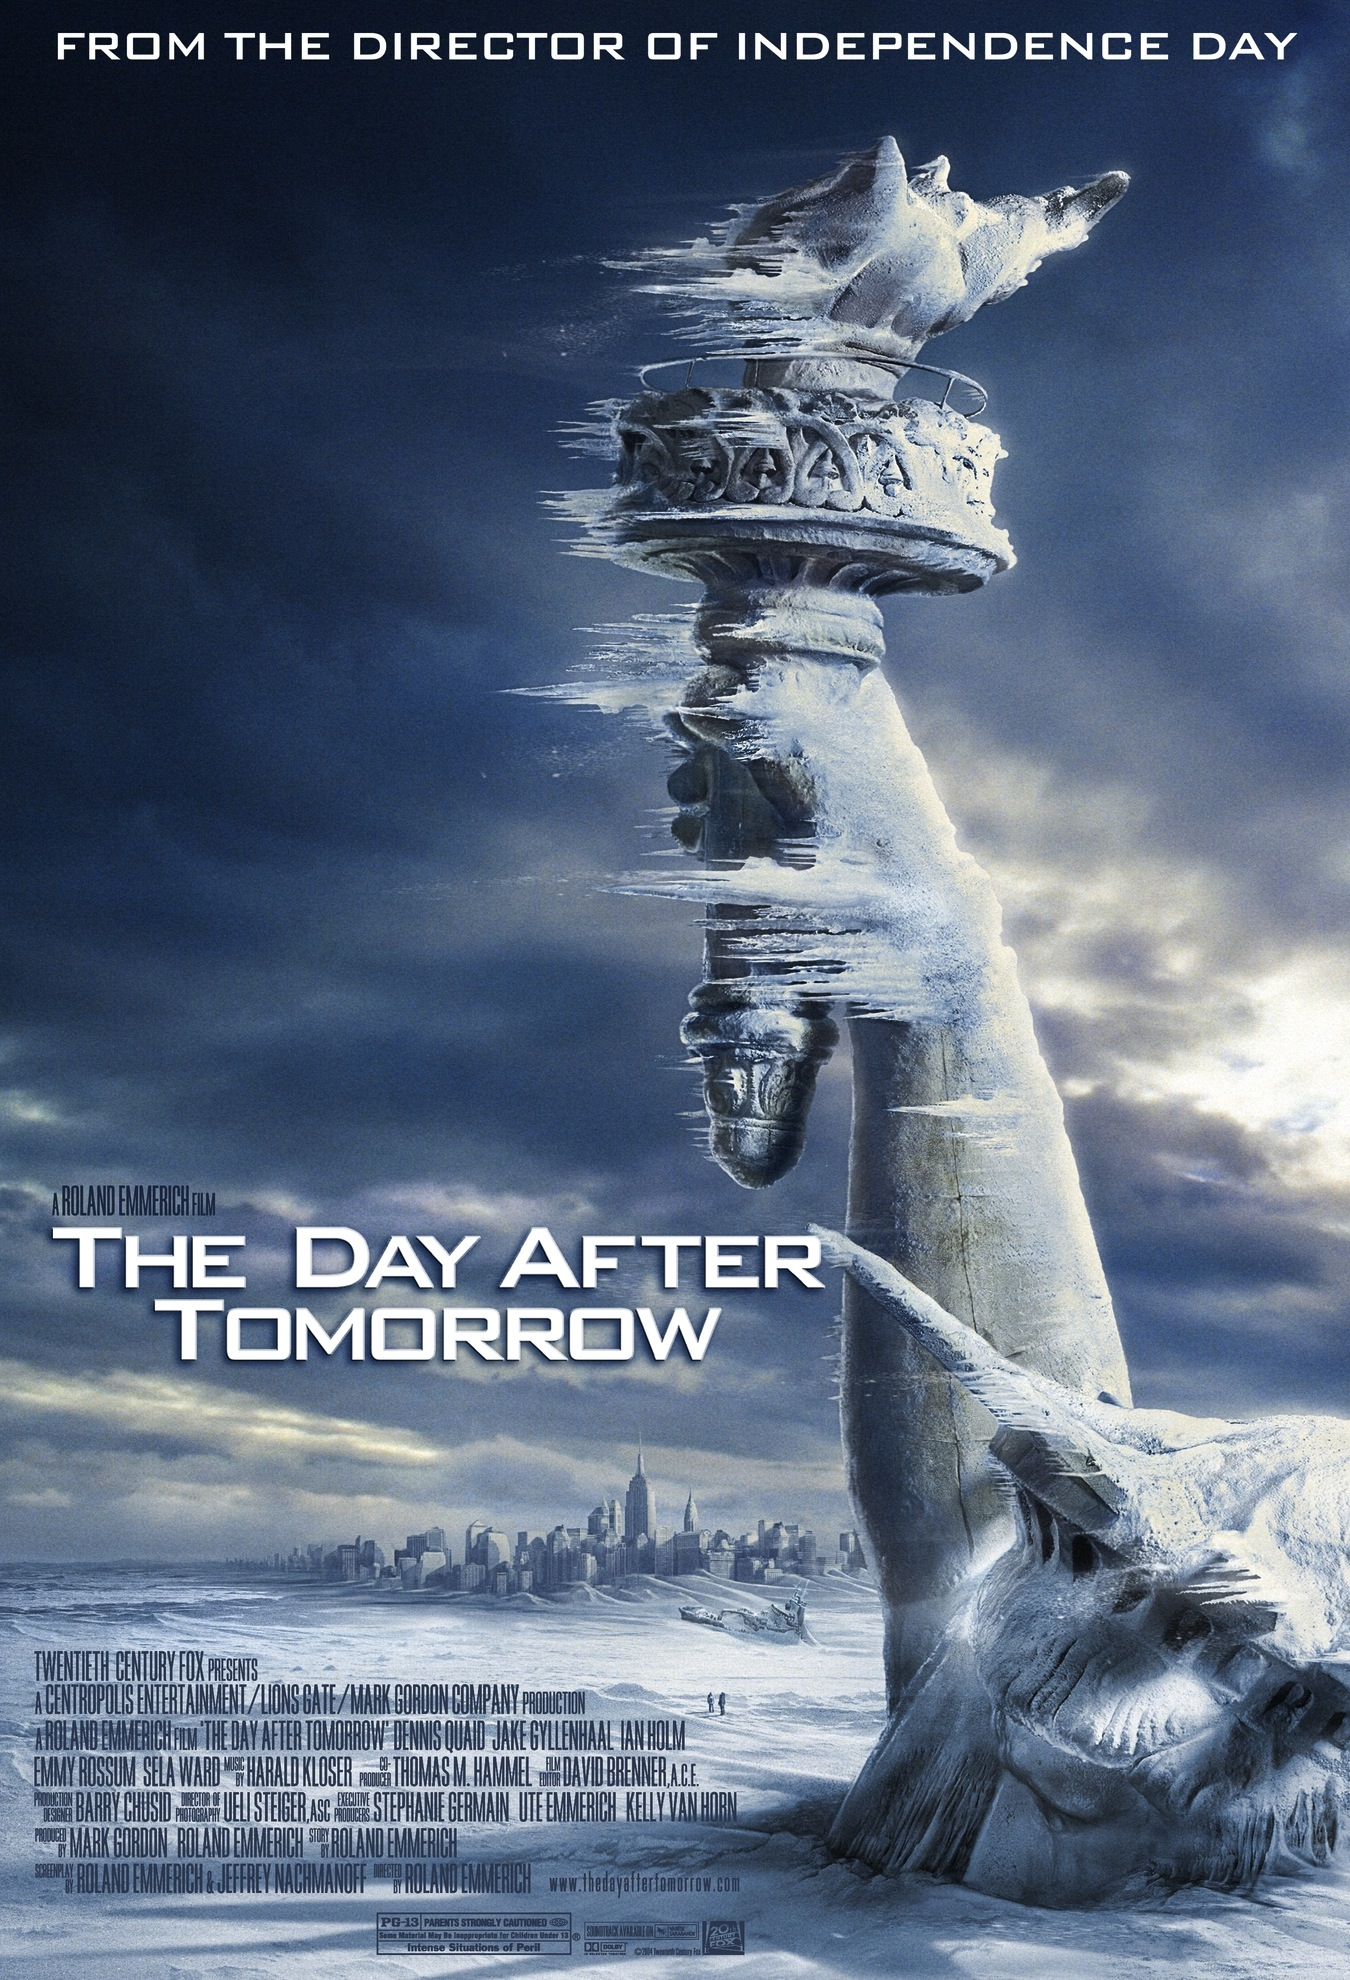 Abb. 24: Poster zu THE DAY AFTER TOMORROW